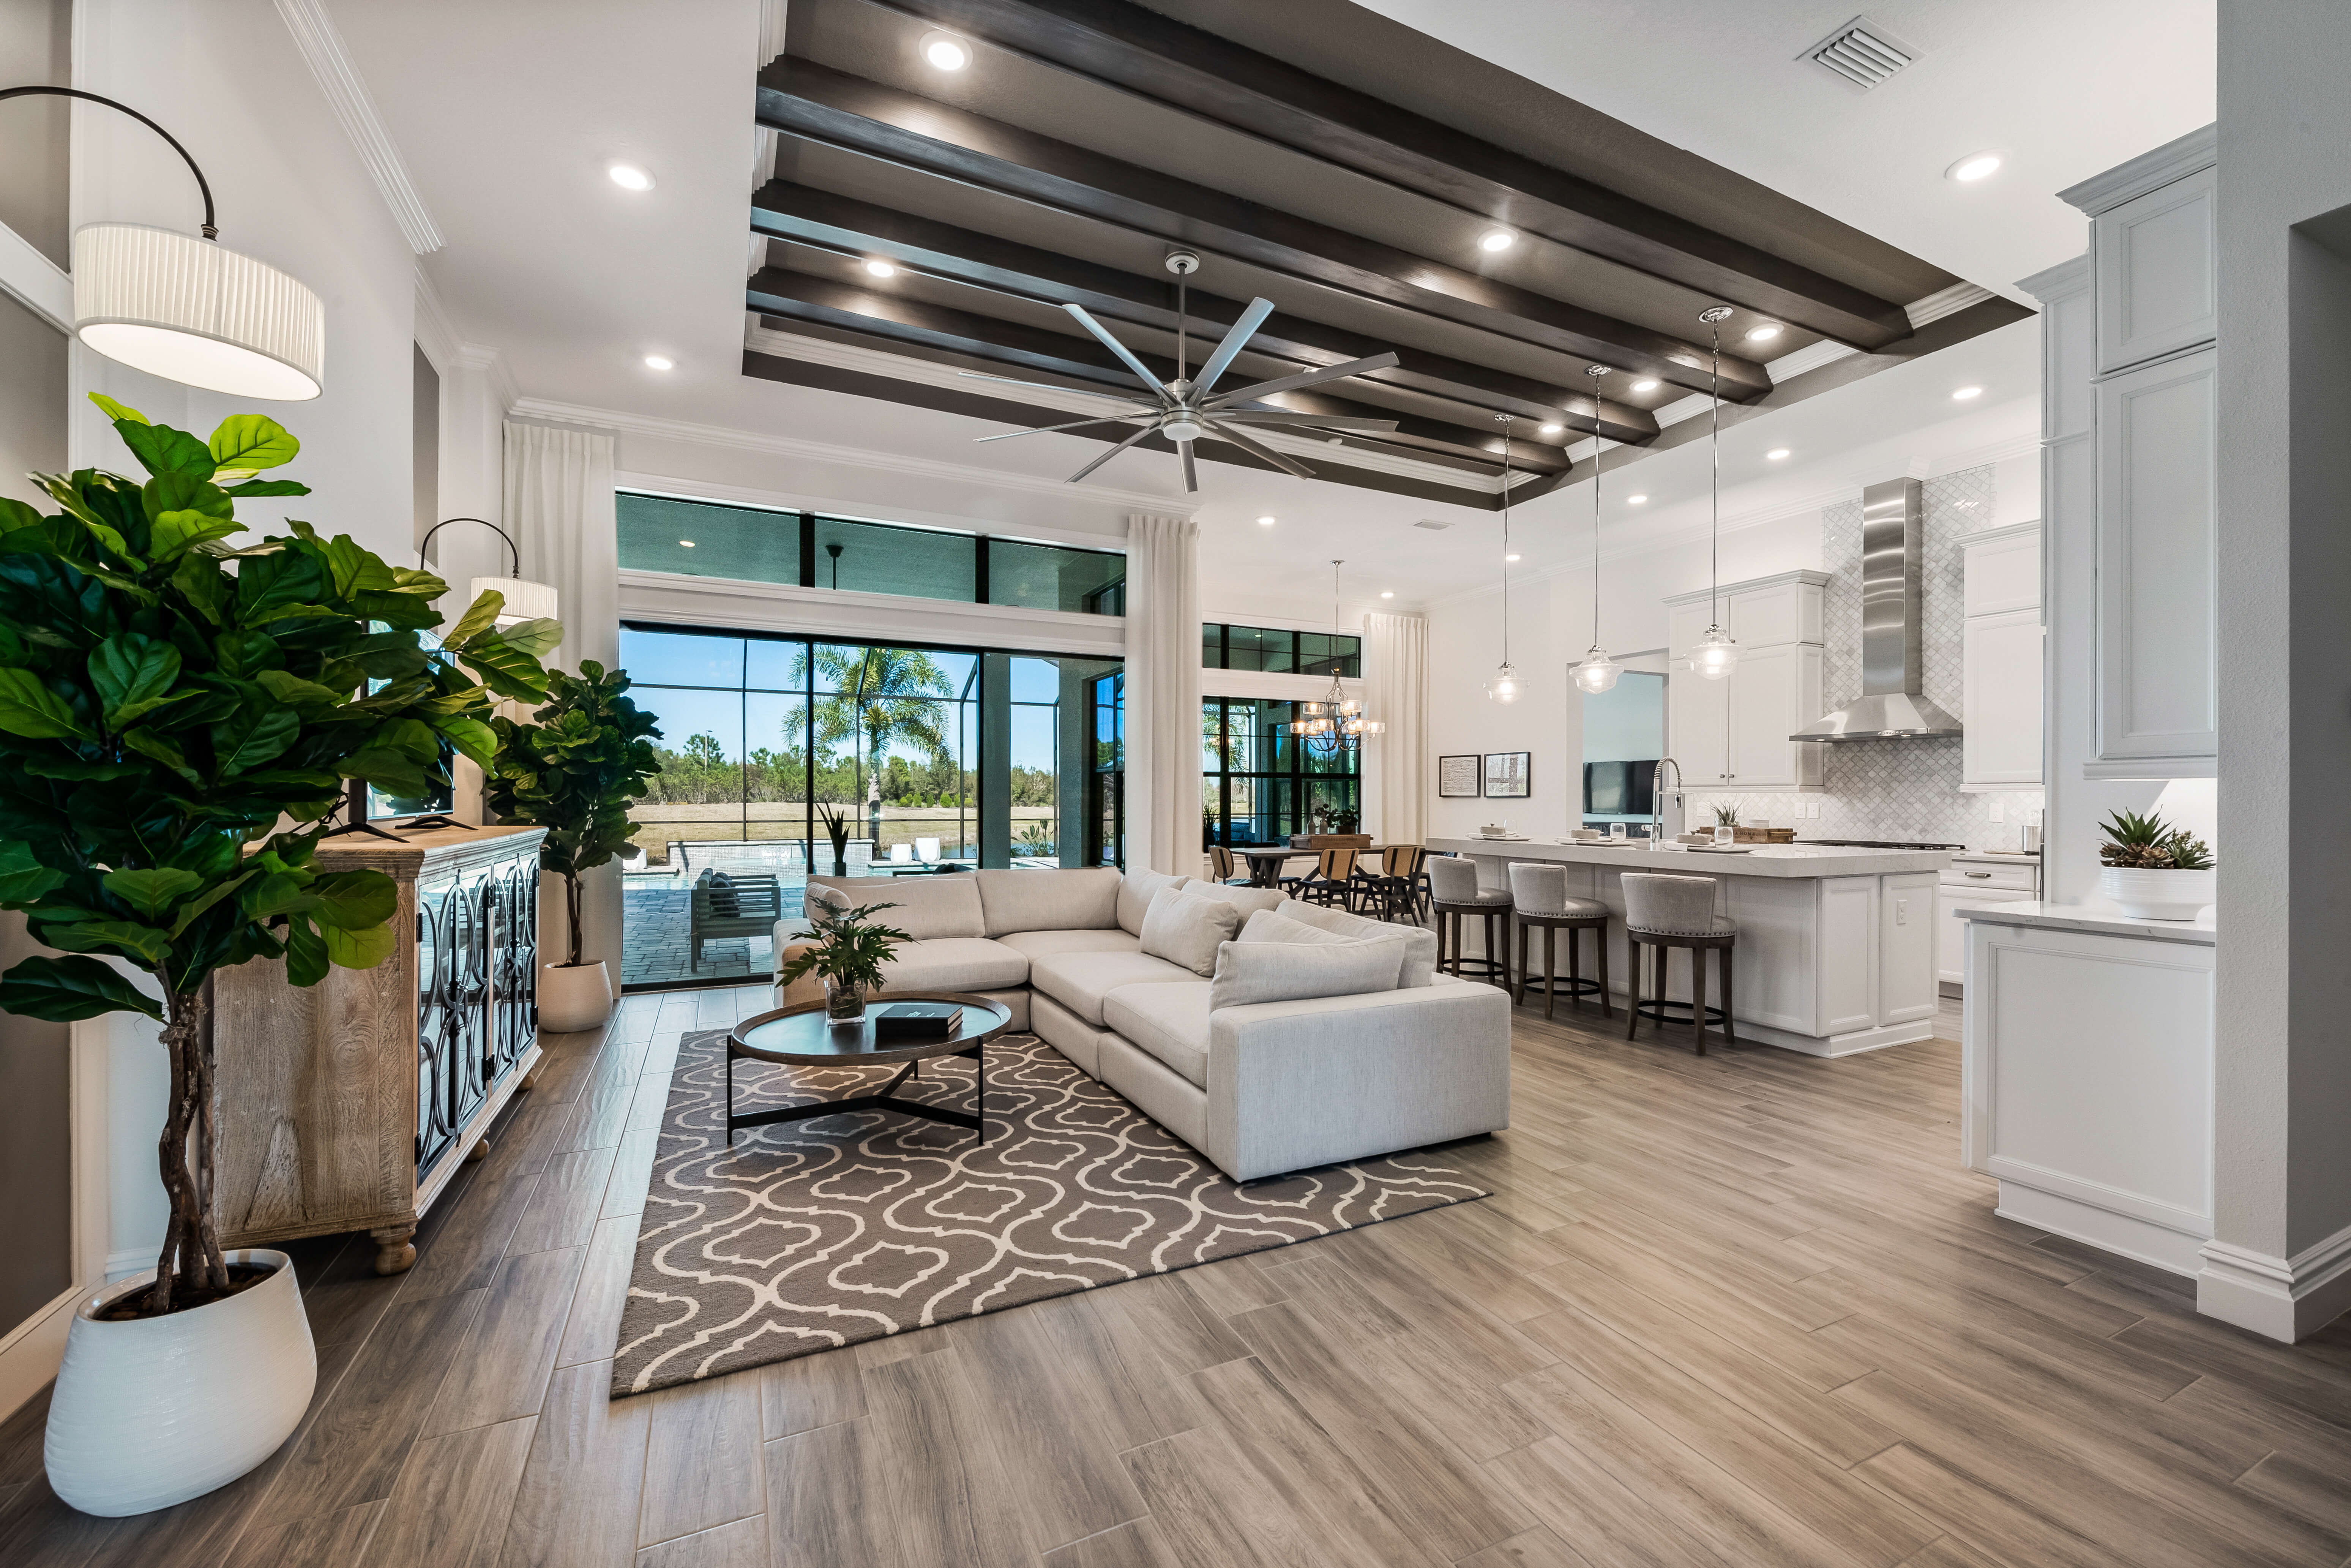 New Tampa Single Family Home Quick Possession Toriana in Lakewood Ranch, located at 16613 Berwick Terrace, Lakewood Ranch, FL 34202 Built By Cardel Homes Tampa